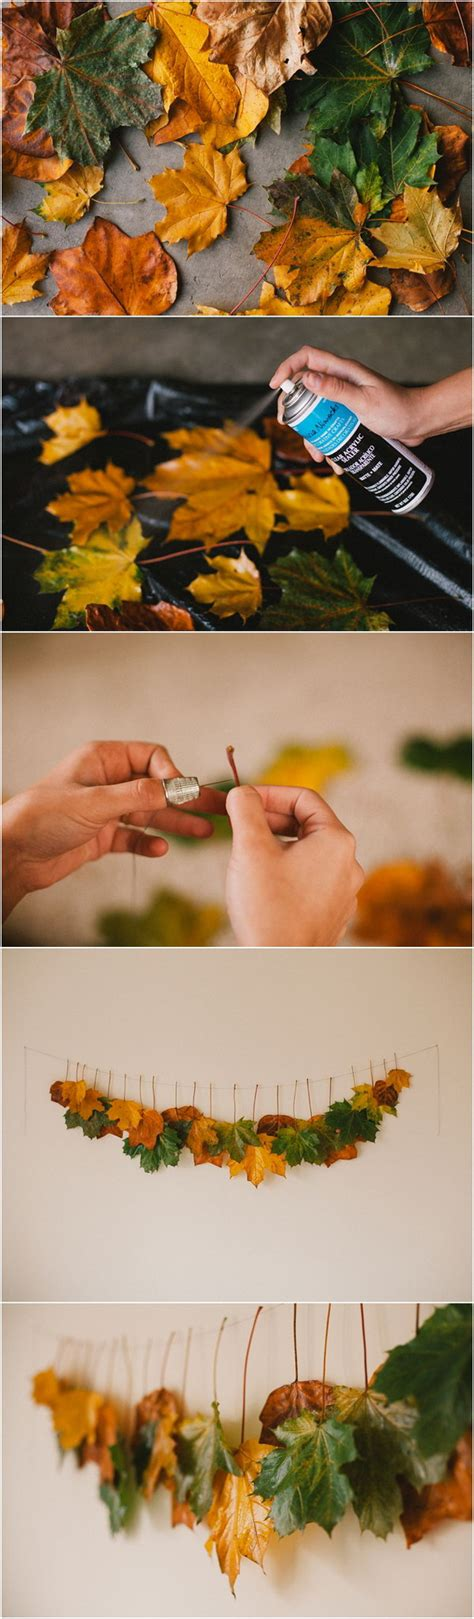 30 cool ways to use autumn leaves for fall home d 233 cor 30 awesome diy ideas and tutorials using fall leaves